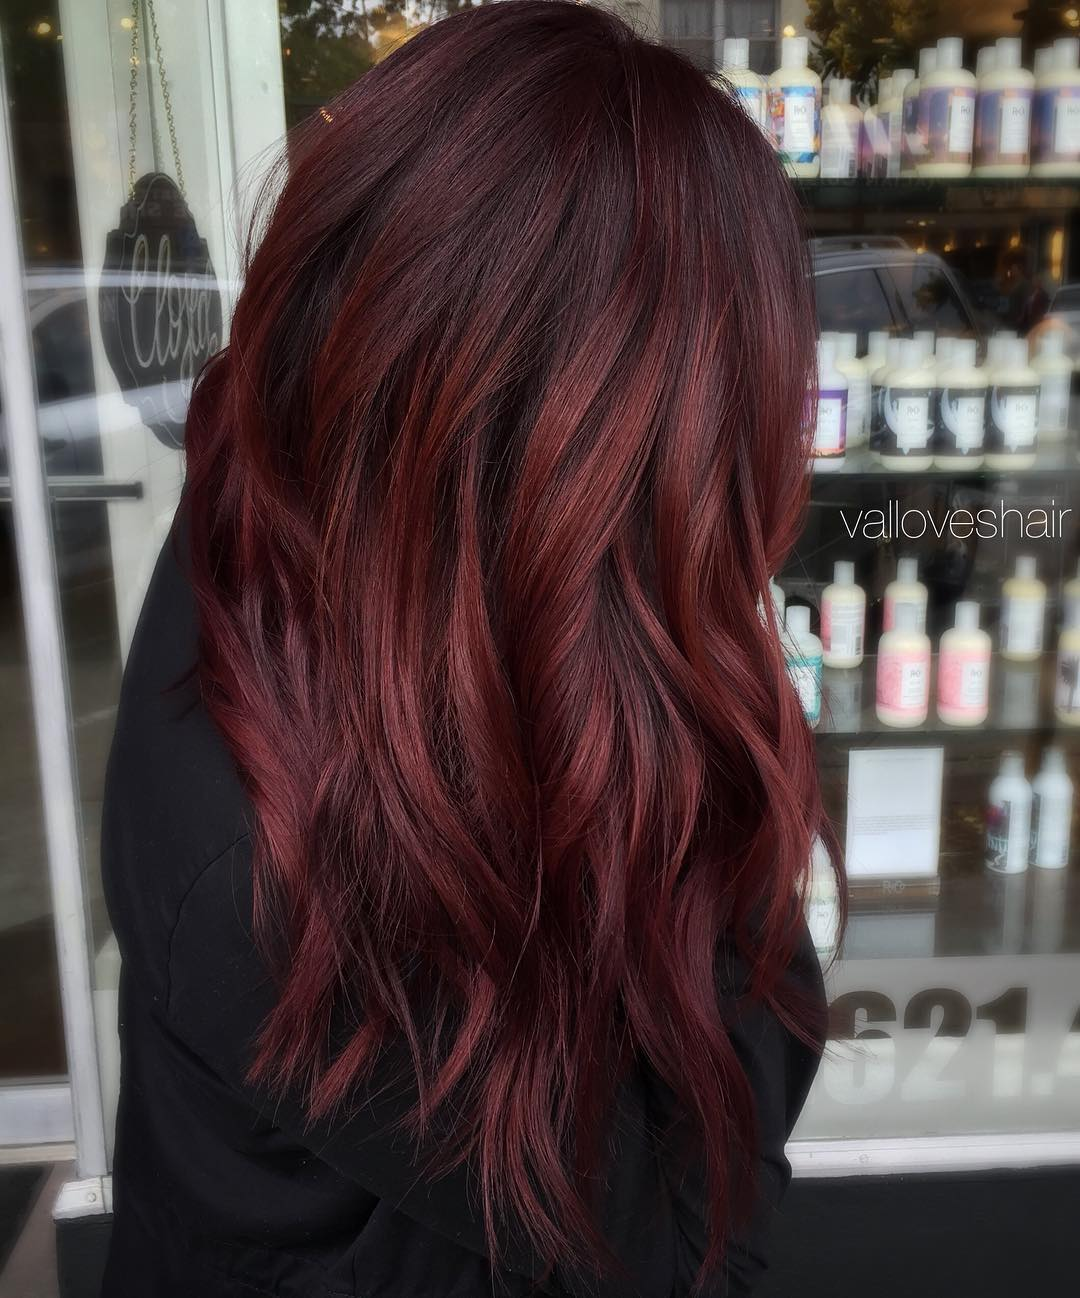 50 Shades Of Burgundy Hair Dark Red Maroon Red Wine Hair Color